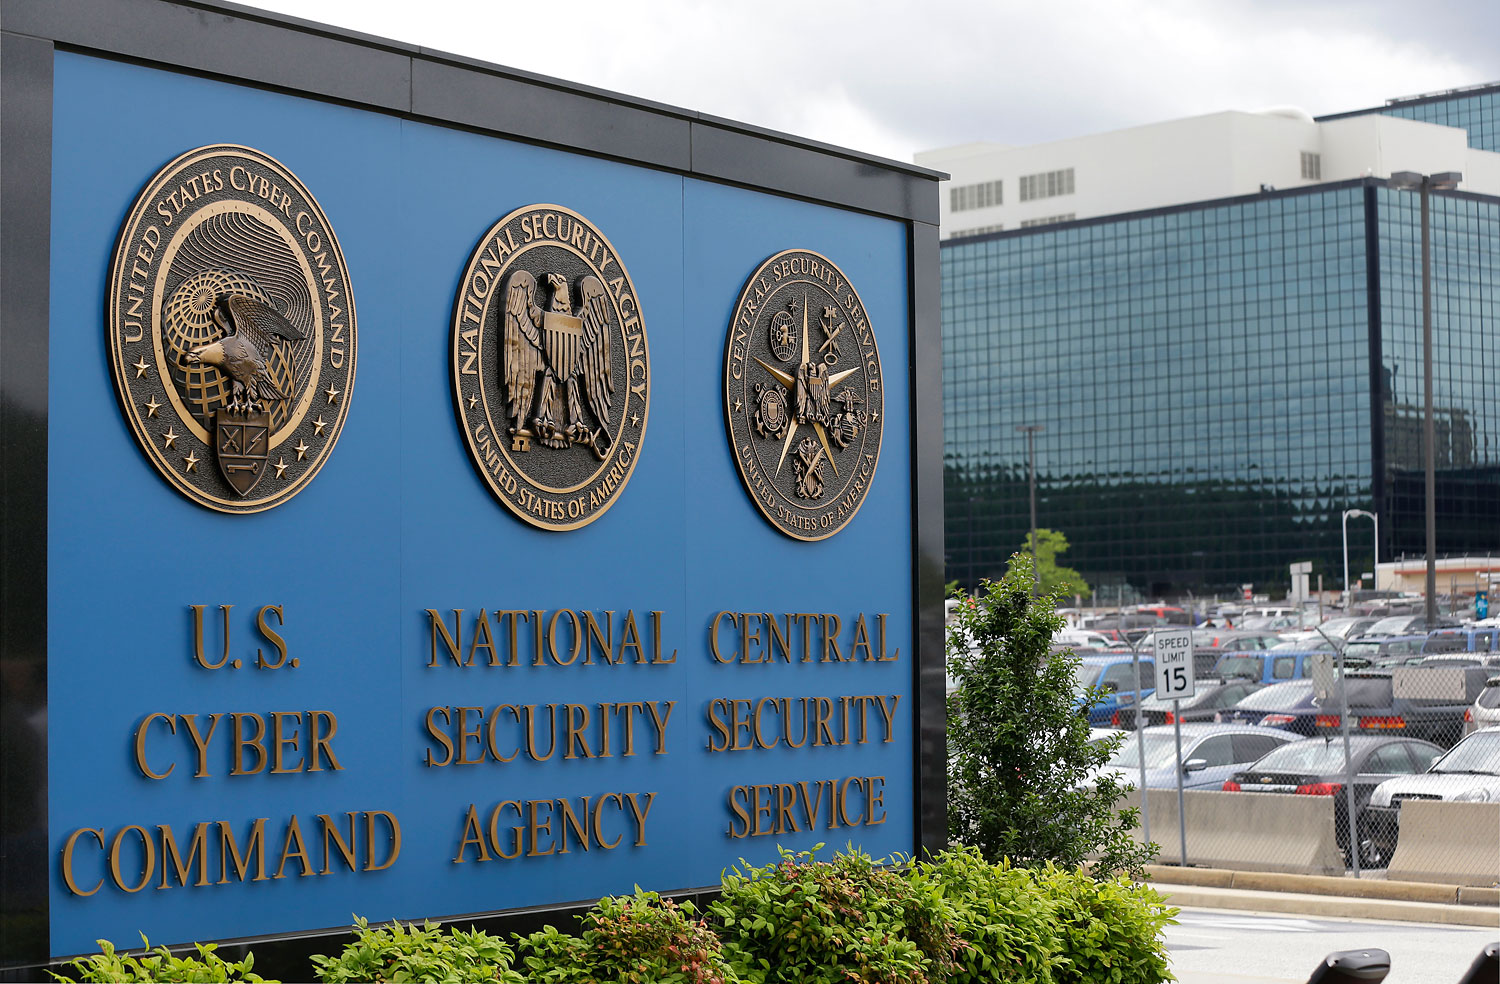 This June 6, 213 file photo shows the sign outside the National Security Agency (NSA) campus in Fort Meade, Md.